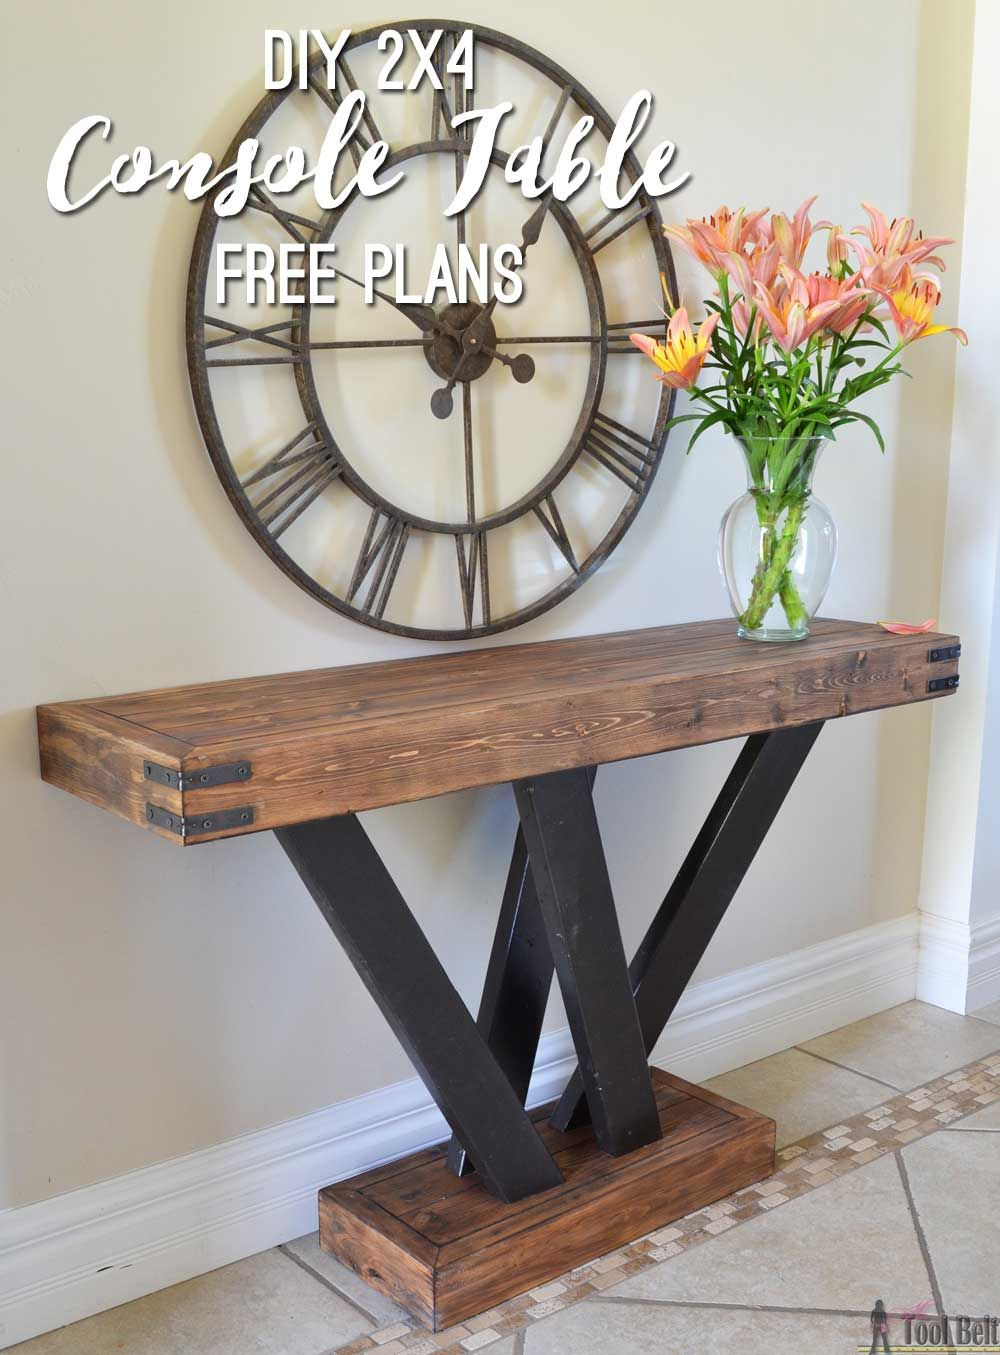 2x4 console table 2x4 lumber rustic console tables and console 2x4 console table geotapseo Choice Image